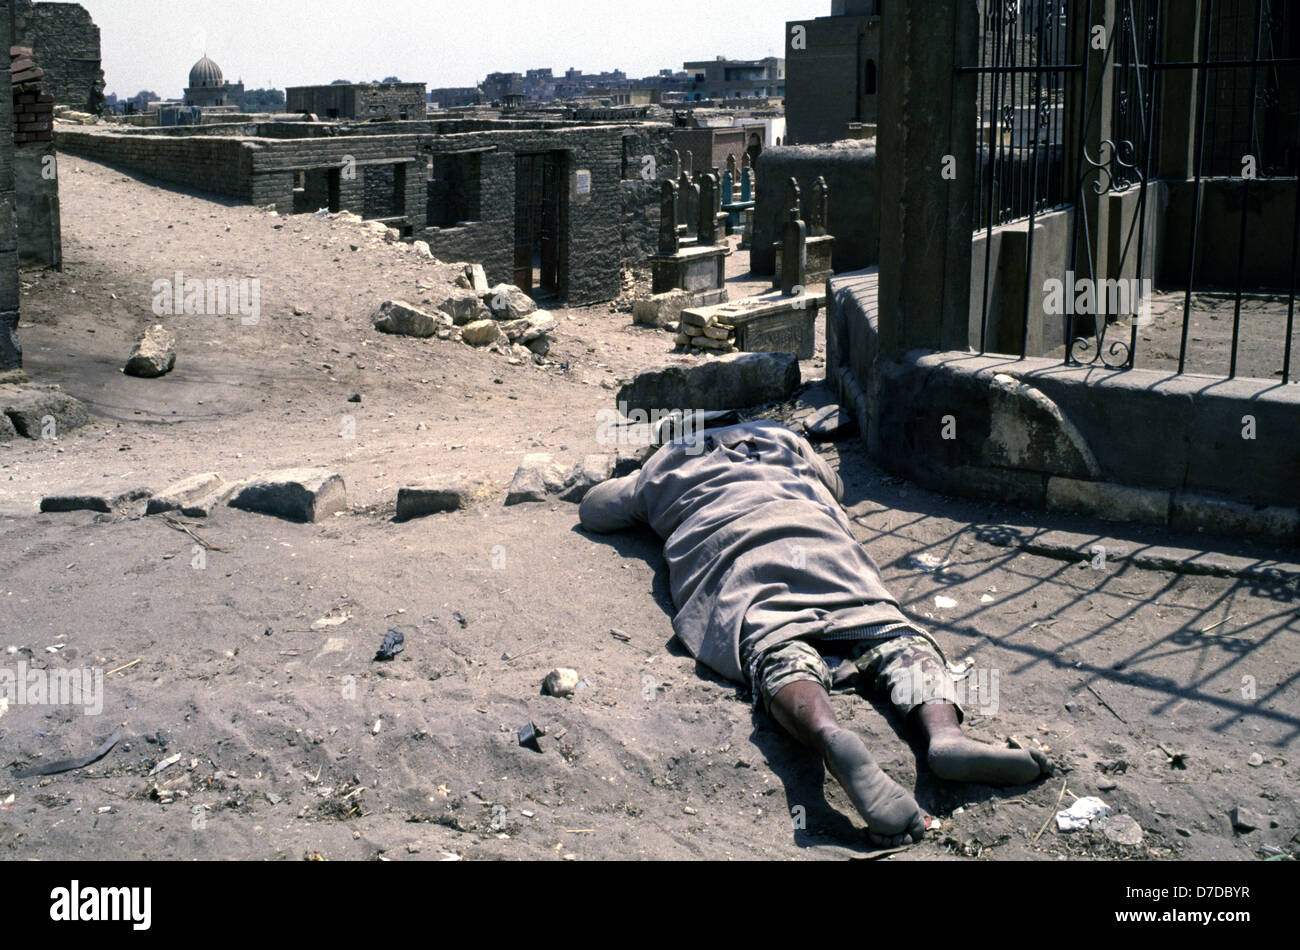 A homeless person sleeping in the ground amid dense grid of tomb and Islamic mausoleum structures in the City of - Stock Image